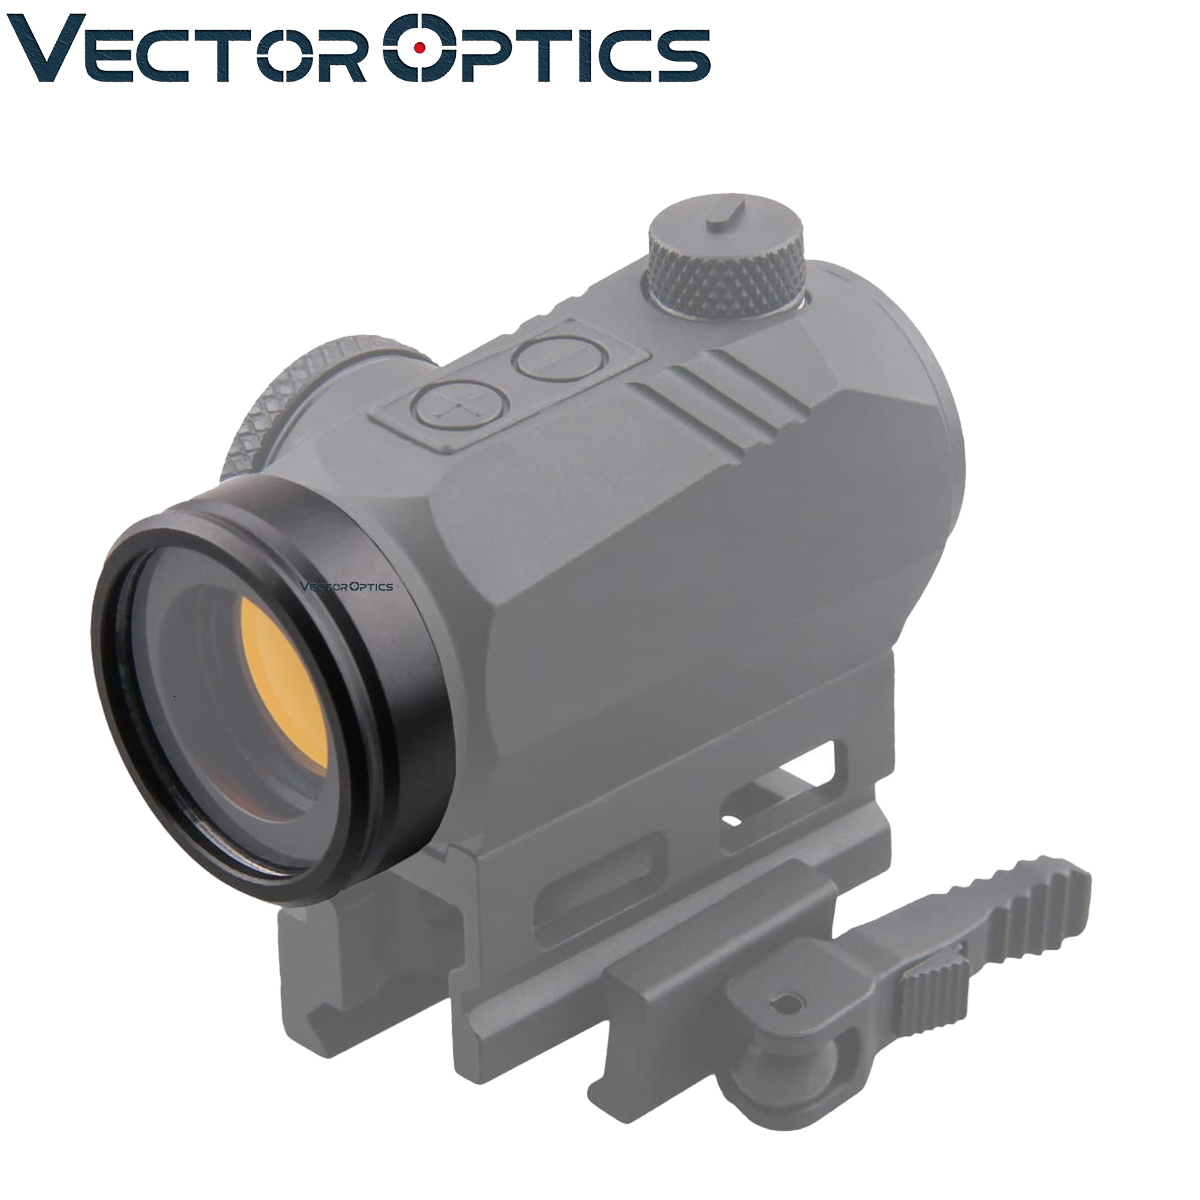 Vector Optics Red Dot Sight Scope Lens Protection Cover Fit Harpy Maverick Centurion Full Metal For Airsoft Game Avoid Broken